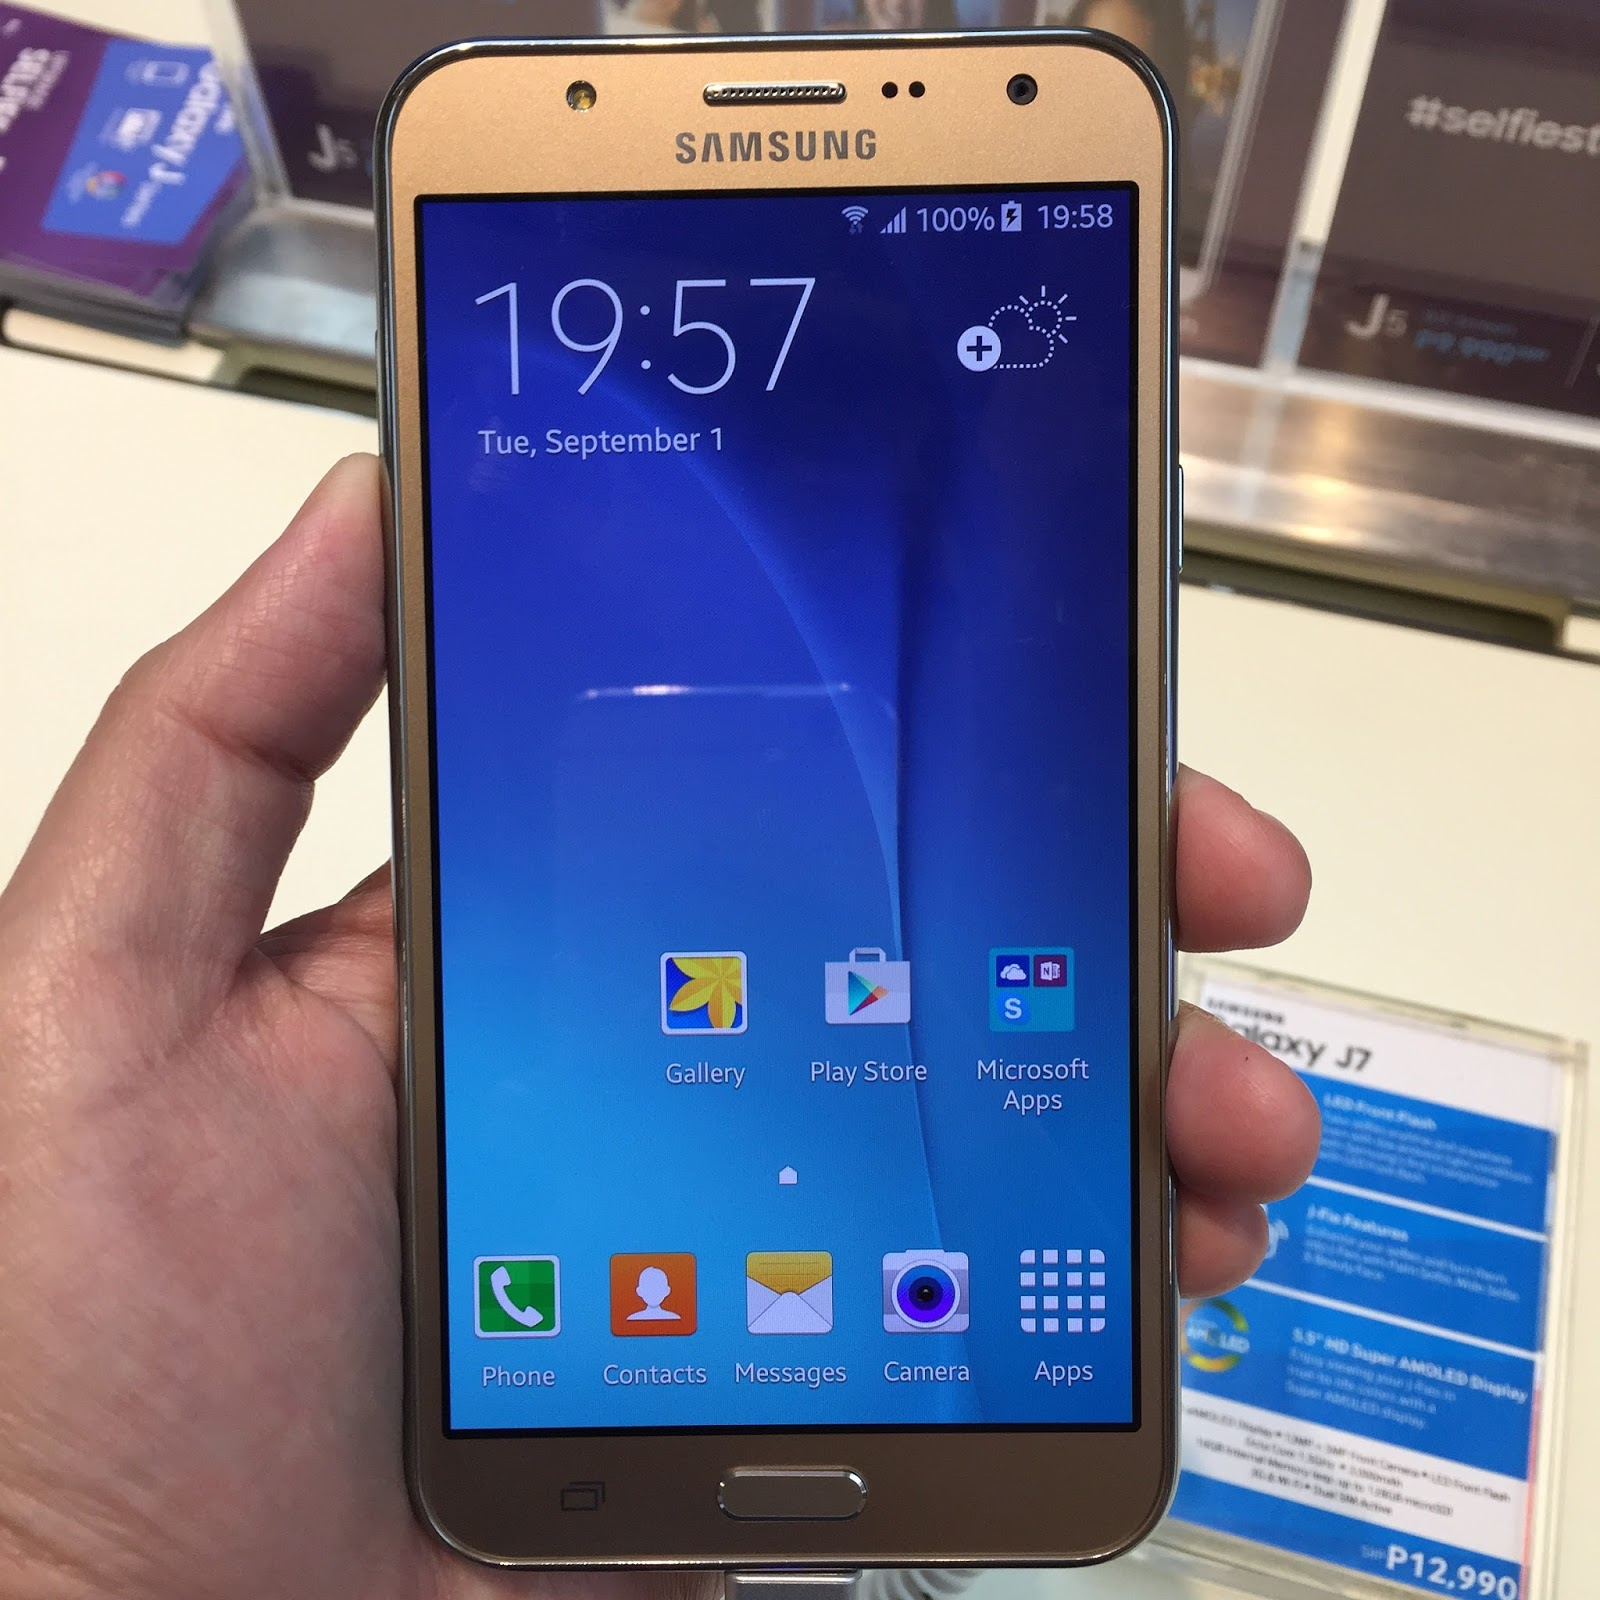 How To Update Samsung GALAXY J7 - SM-J700F to Official Android 5 1 1